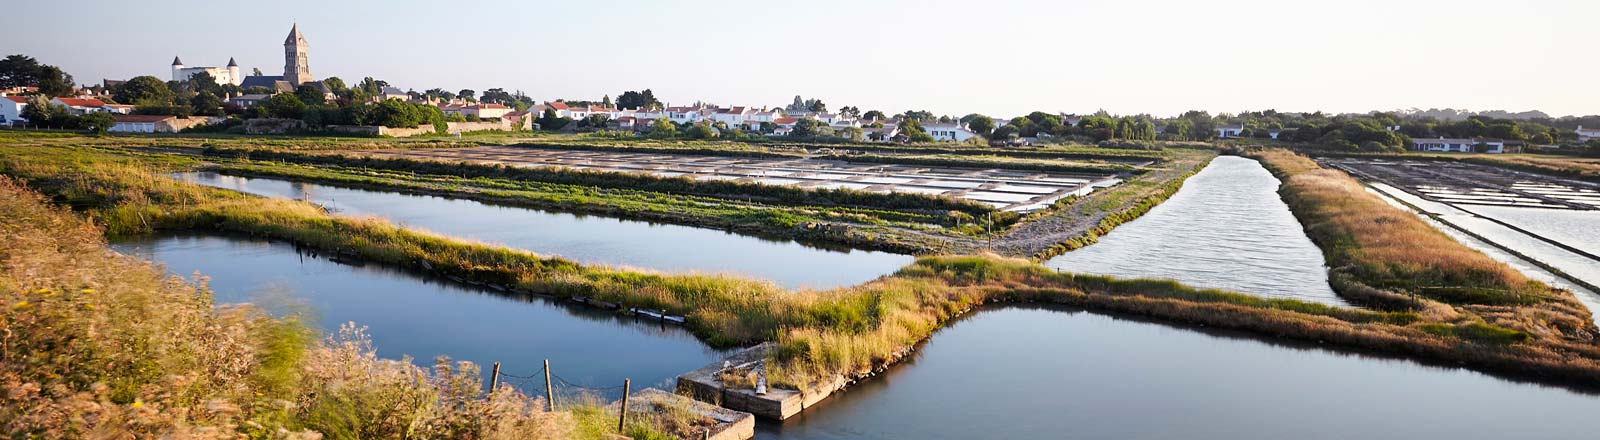 The Noirmoutier salt marshes during your camping stay in Vendée